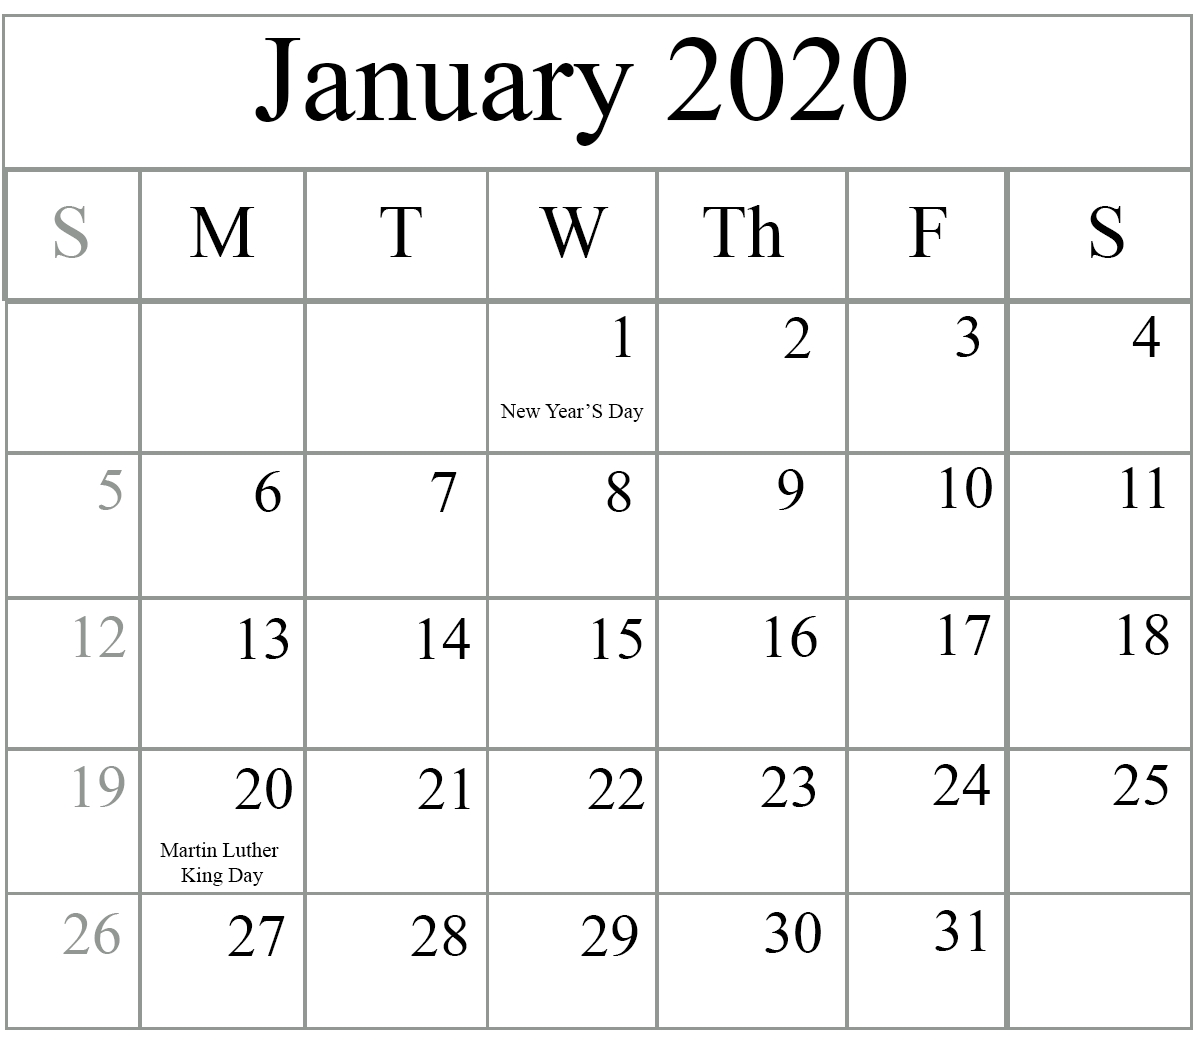 Free January 2020 Printable Calendar Blank In Pdf, Excel-Blank 2020 Calendar Month By Month